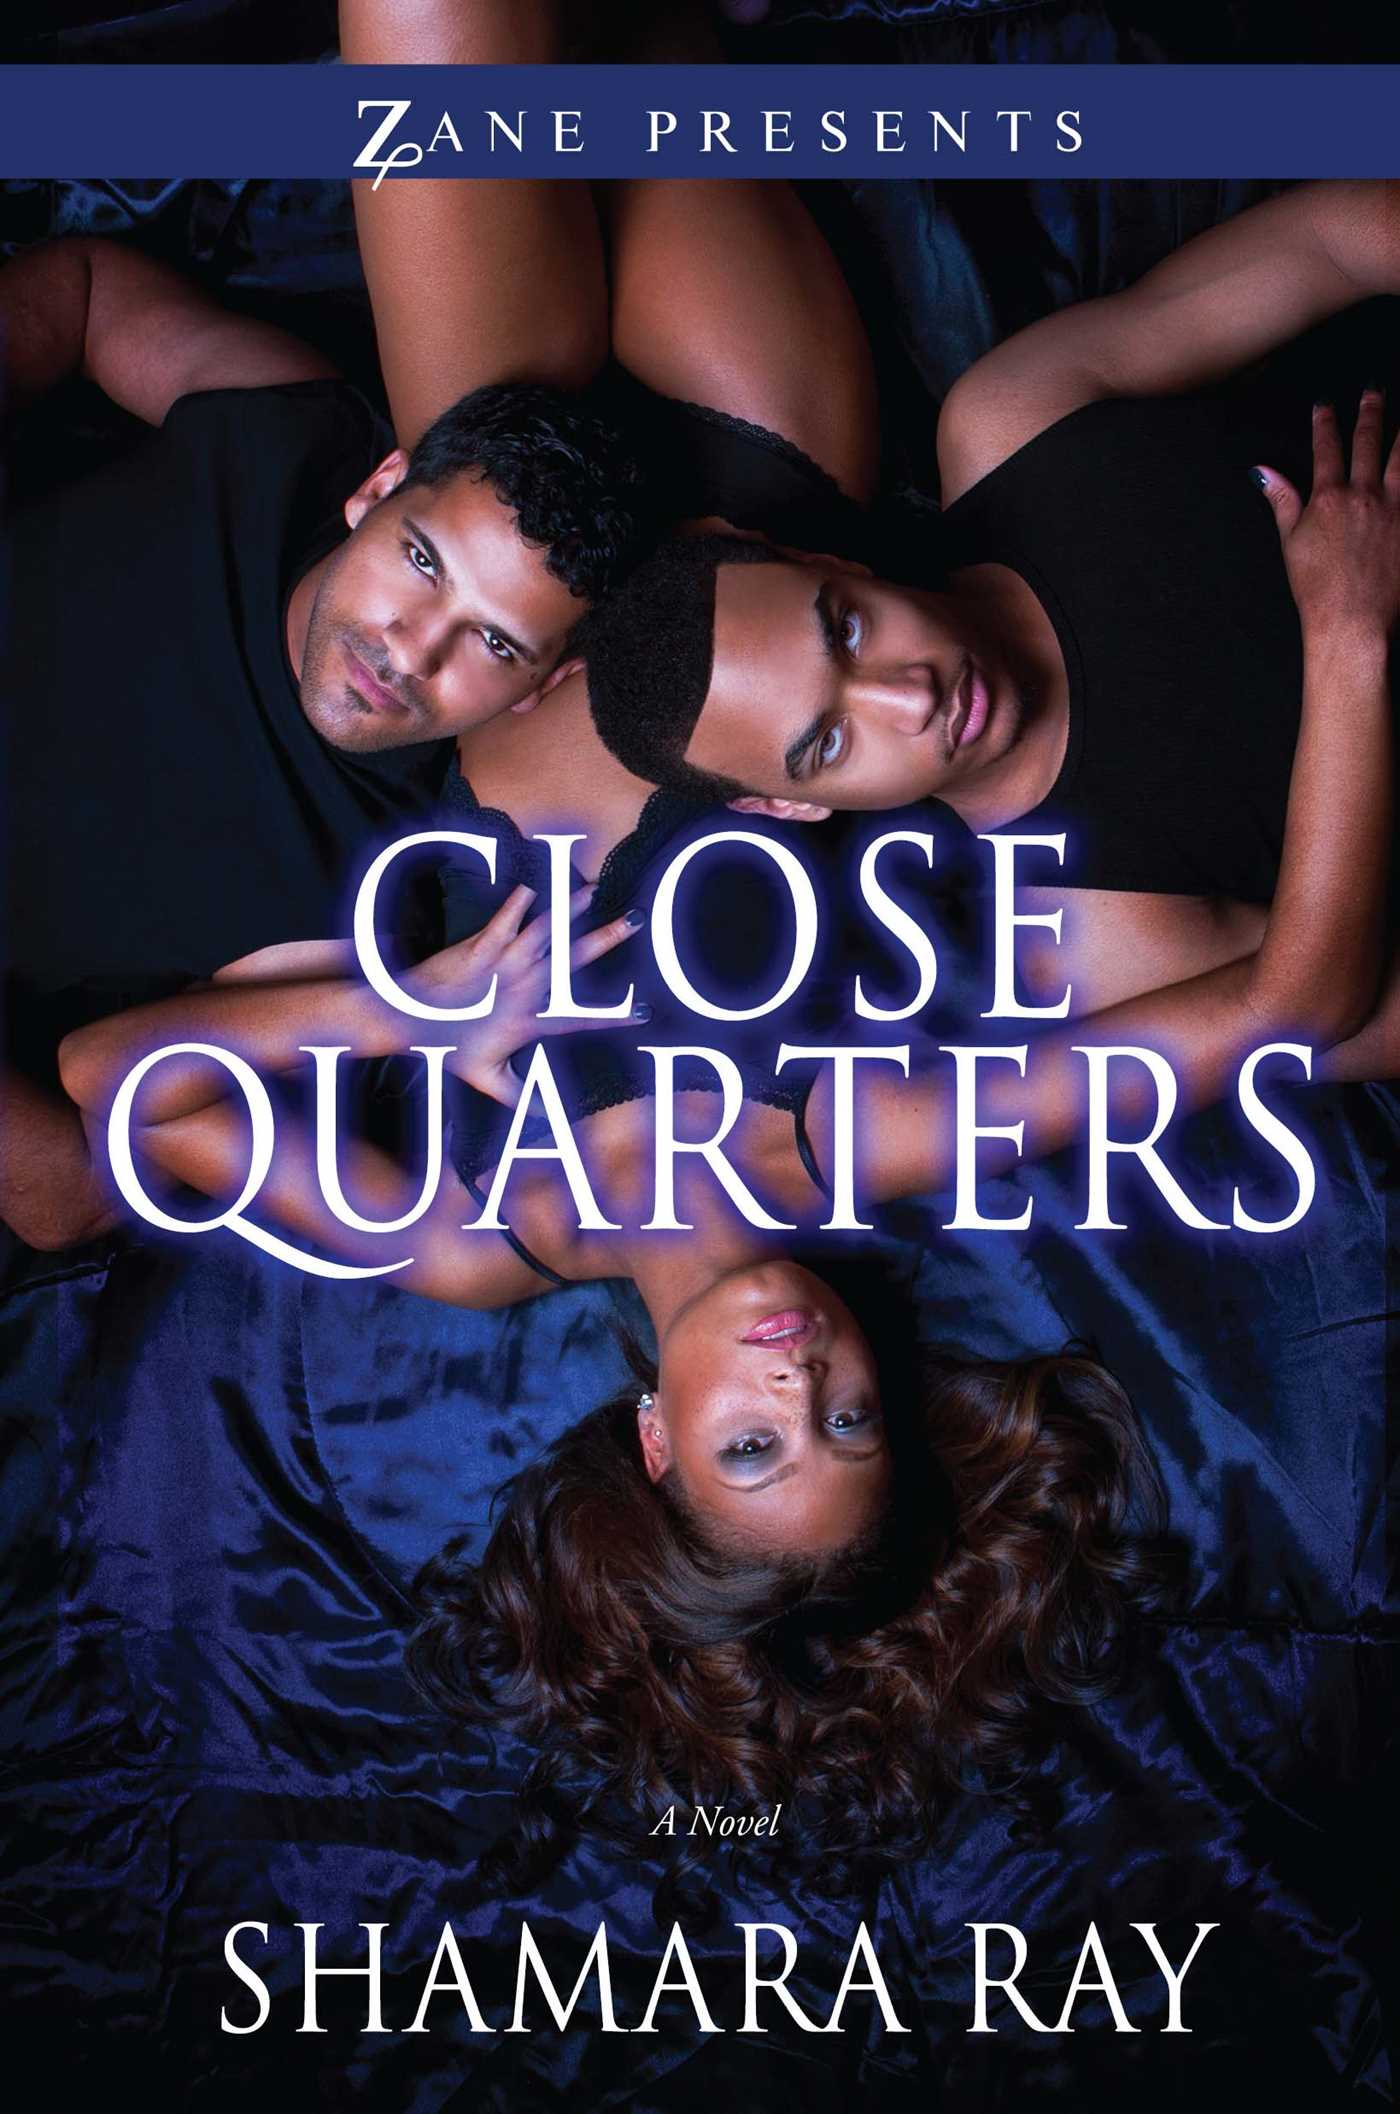 Close-quarters-9781593094430_hr